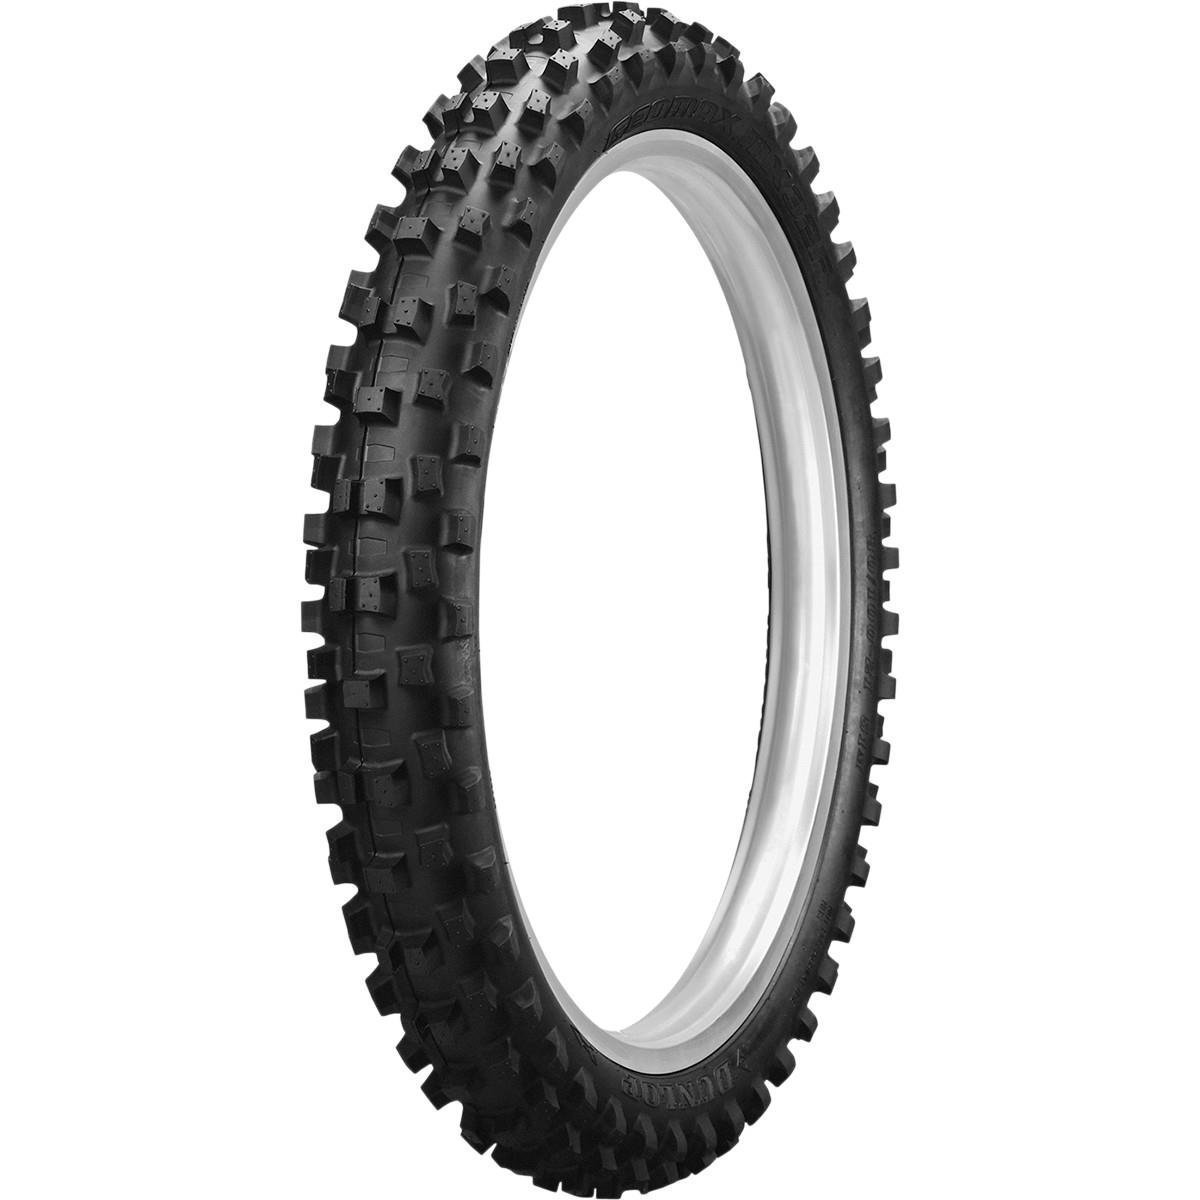 Dunlop Geomax MX32 Soft/Intermediate Front Tire - 60/100-14, Position: Front, Rim Size: 14, Tire Application: Soft, Tire Size: 60/100-14, Tire Type: Offroad, Load Rating: 30, Speed Rating: M 32MX64 by Dunlop Tires (Image #1)